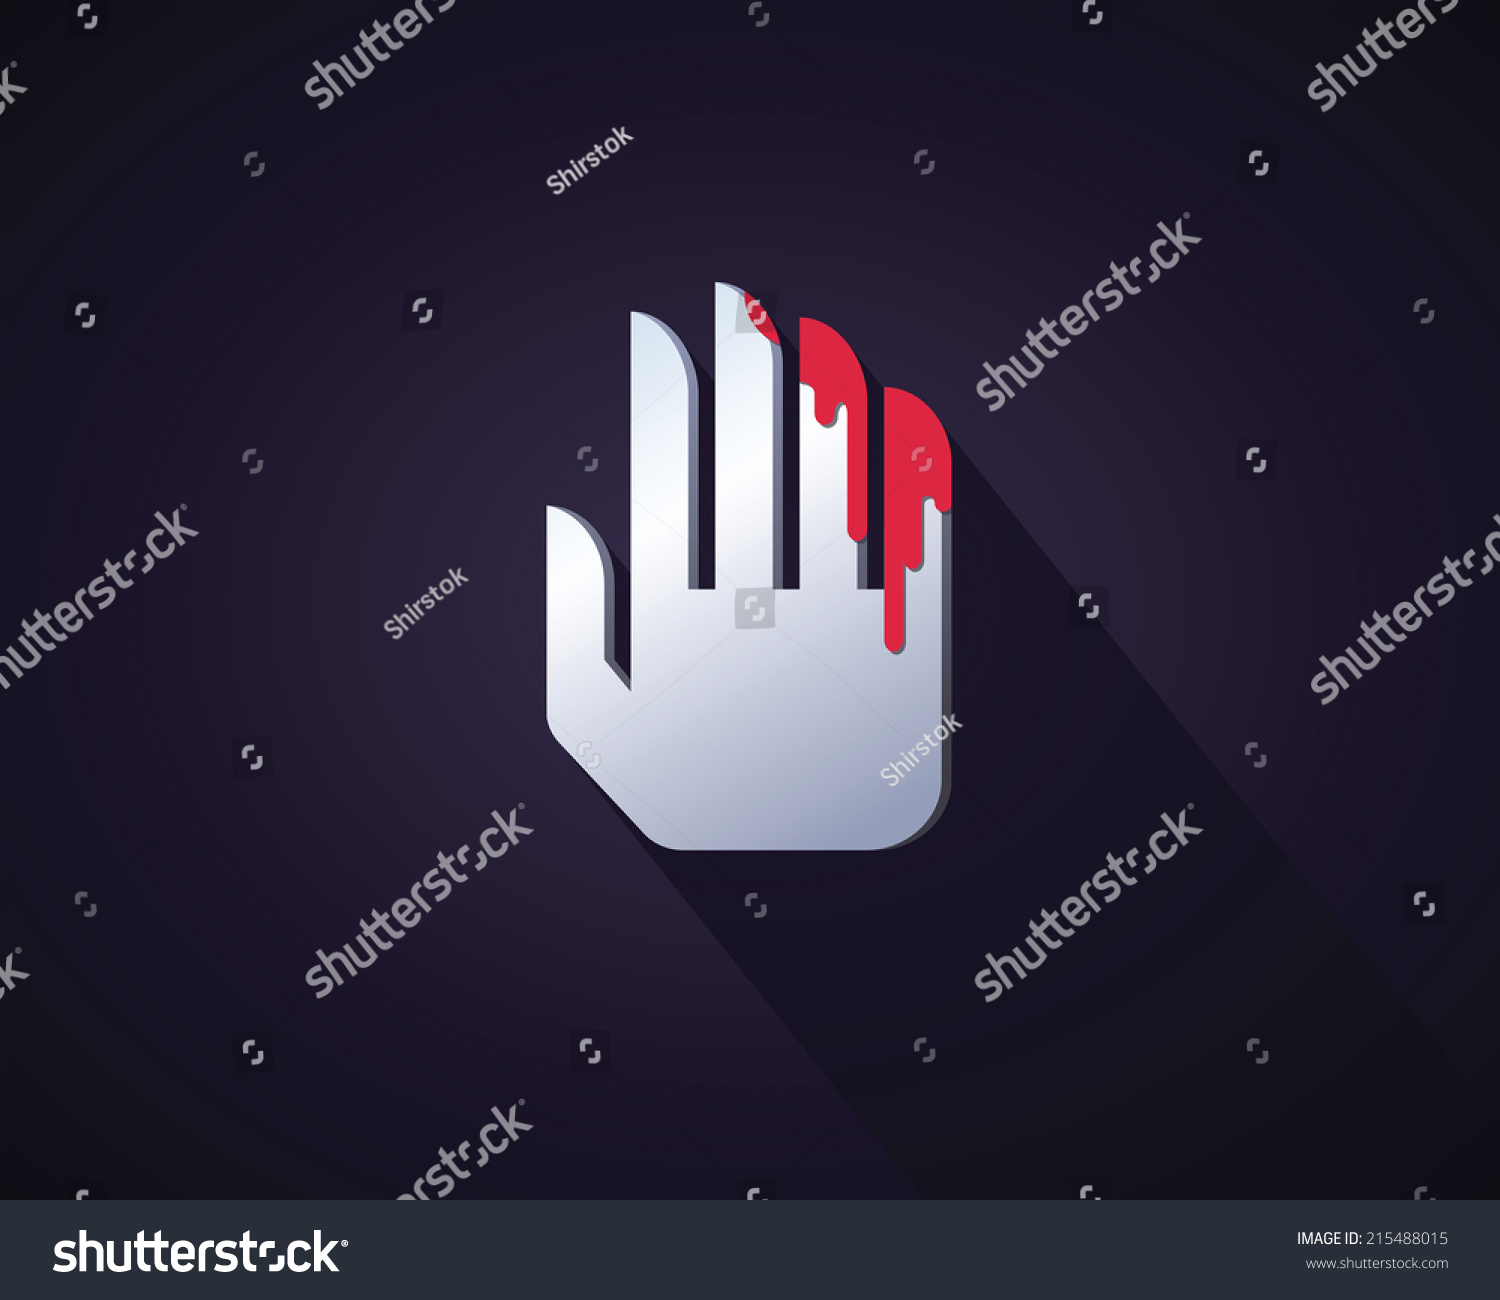 Abstract icon bloody hand symbol violence stock vector 215488015 abstract icon of bloody hand as symbol of violence and cruelty buycottarizona Choice Image